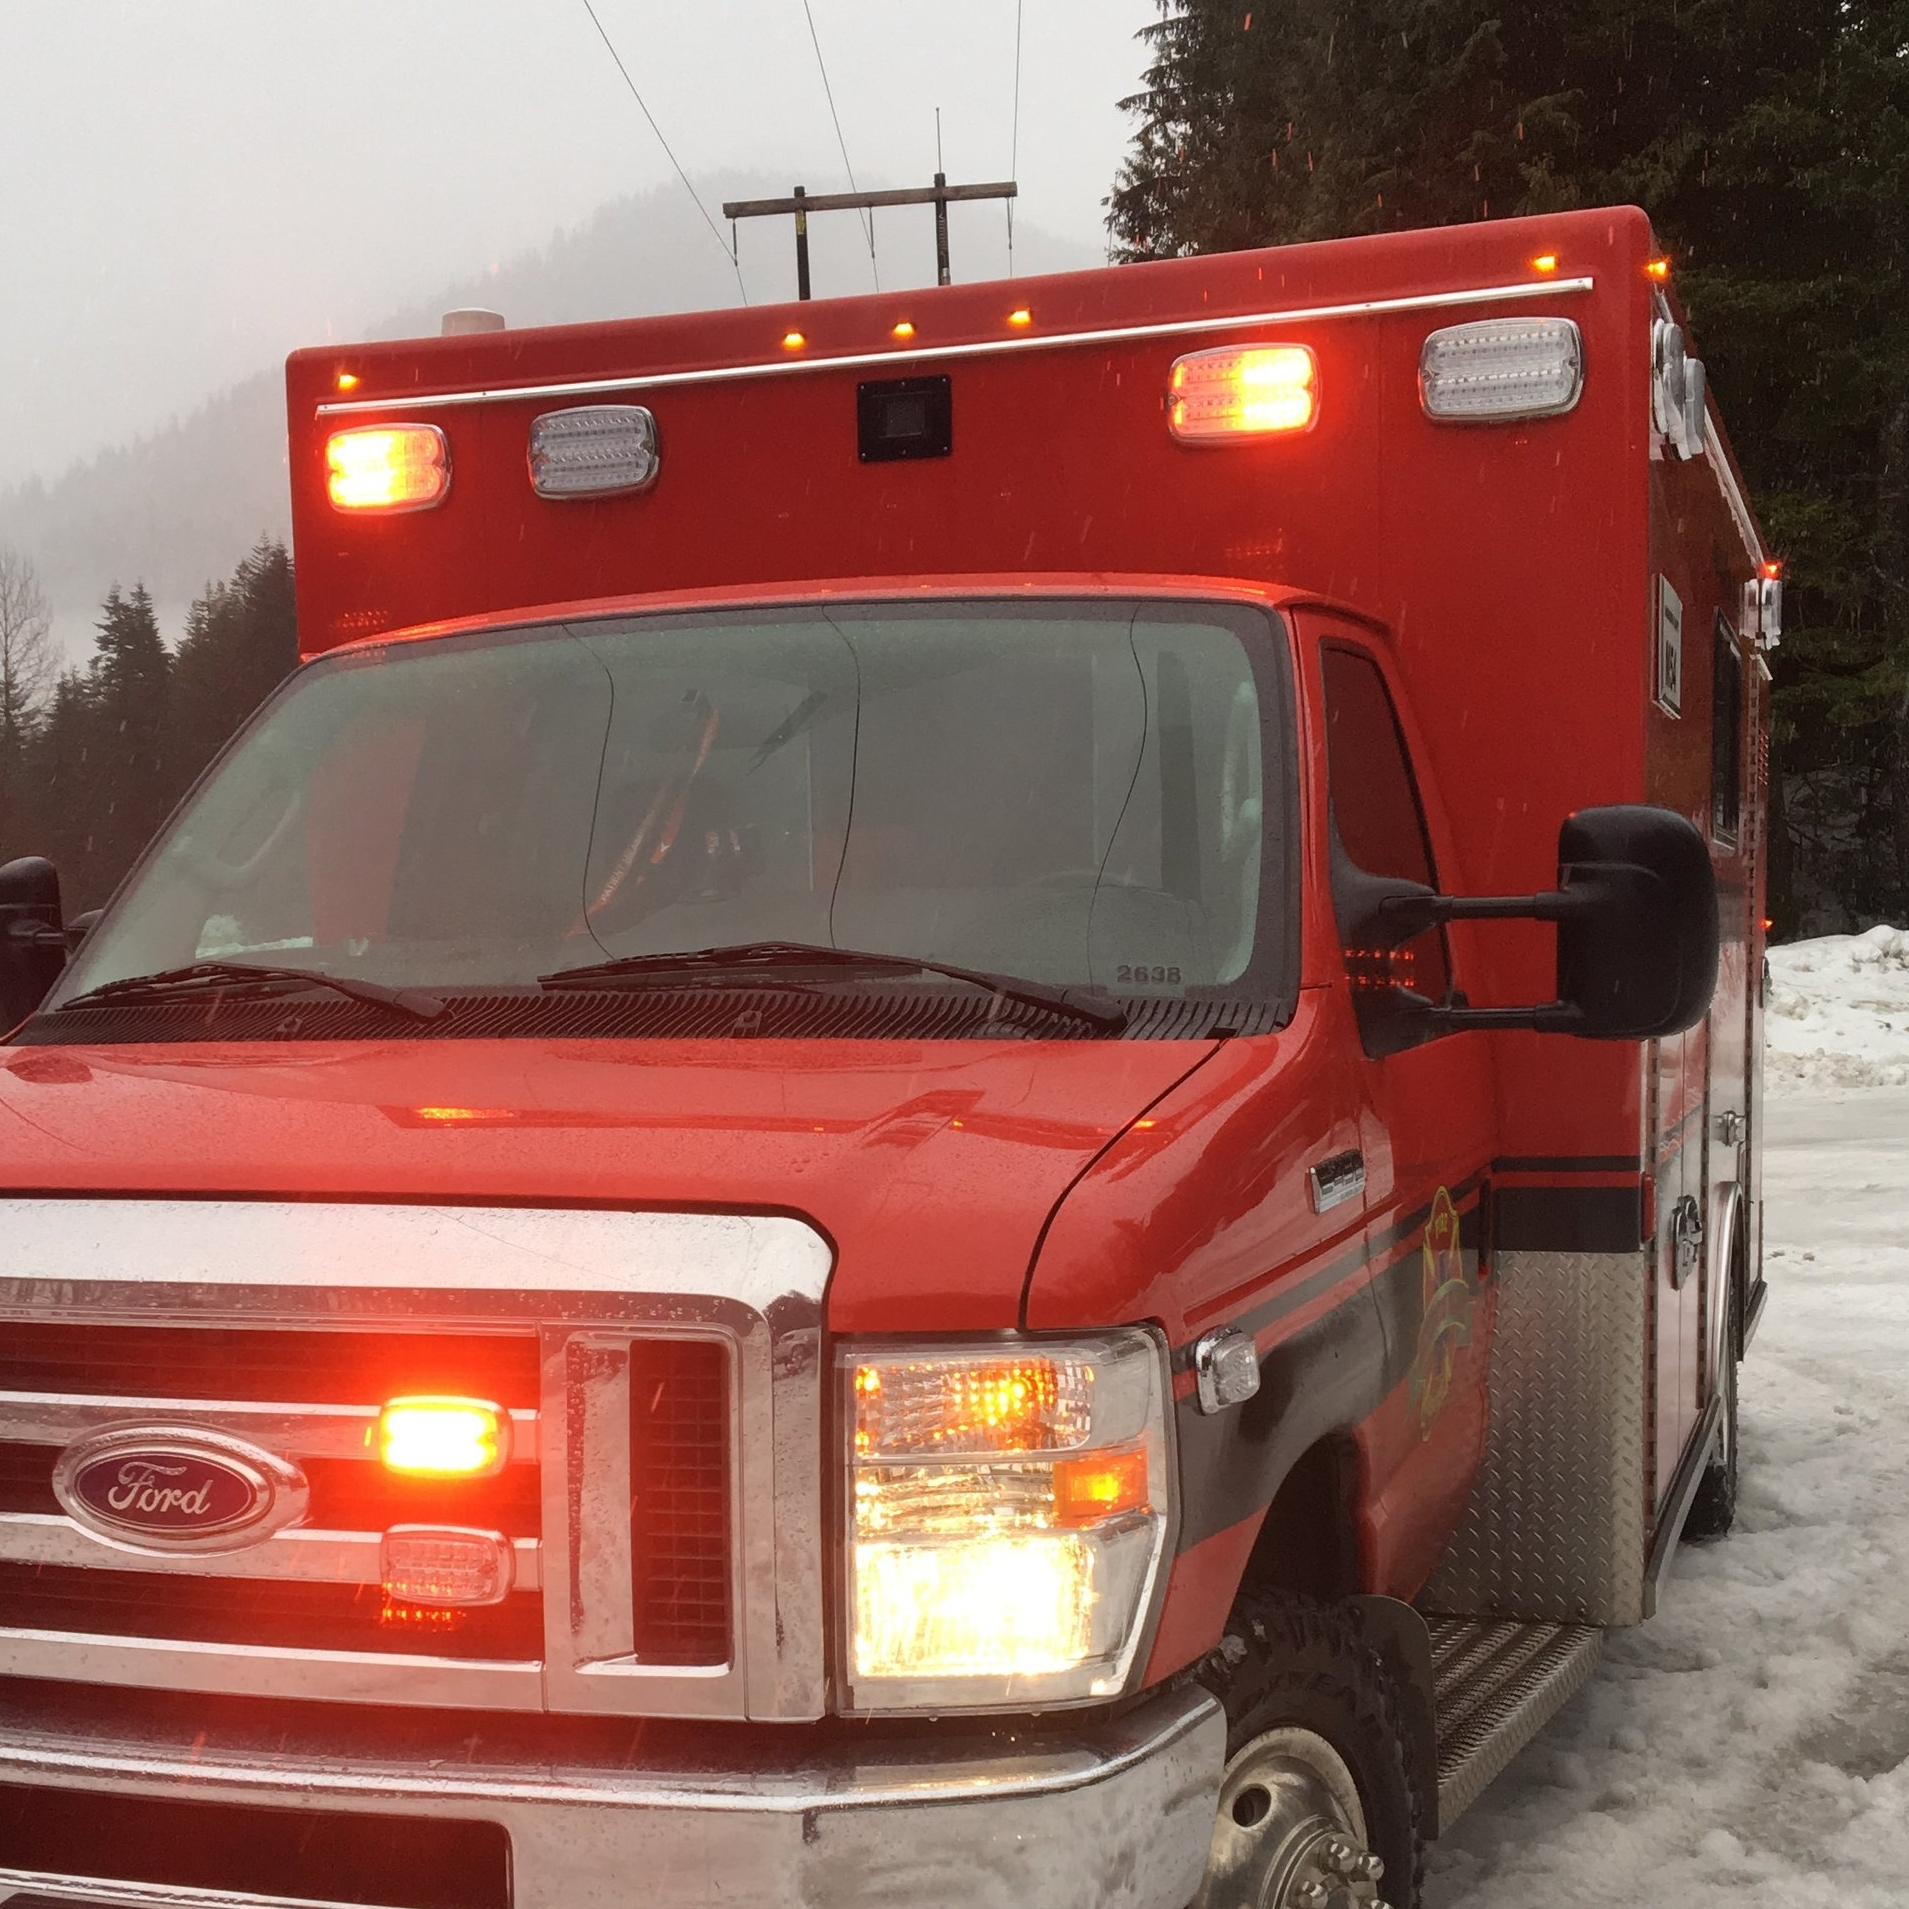 EMERGENCY MEDICAL SERVICES -